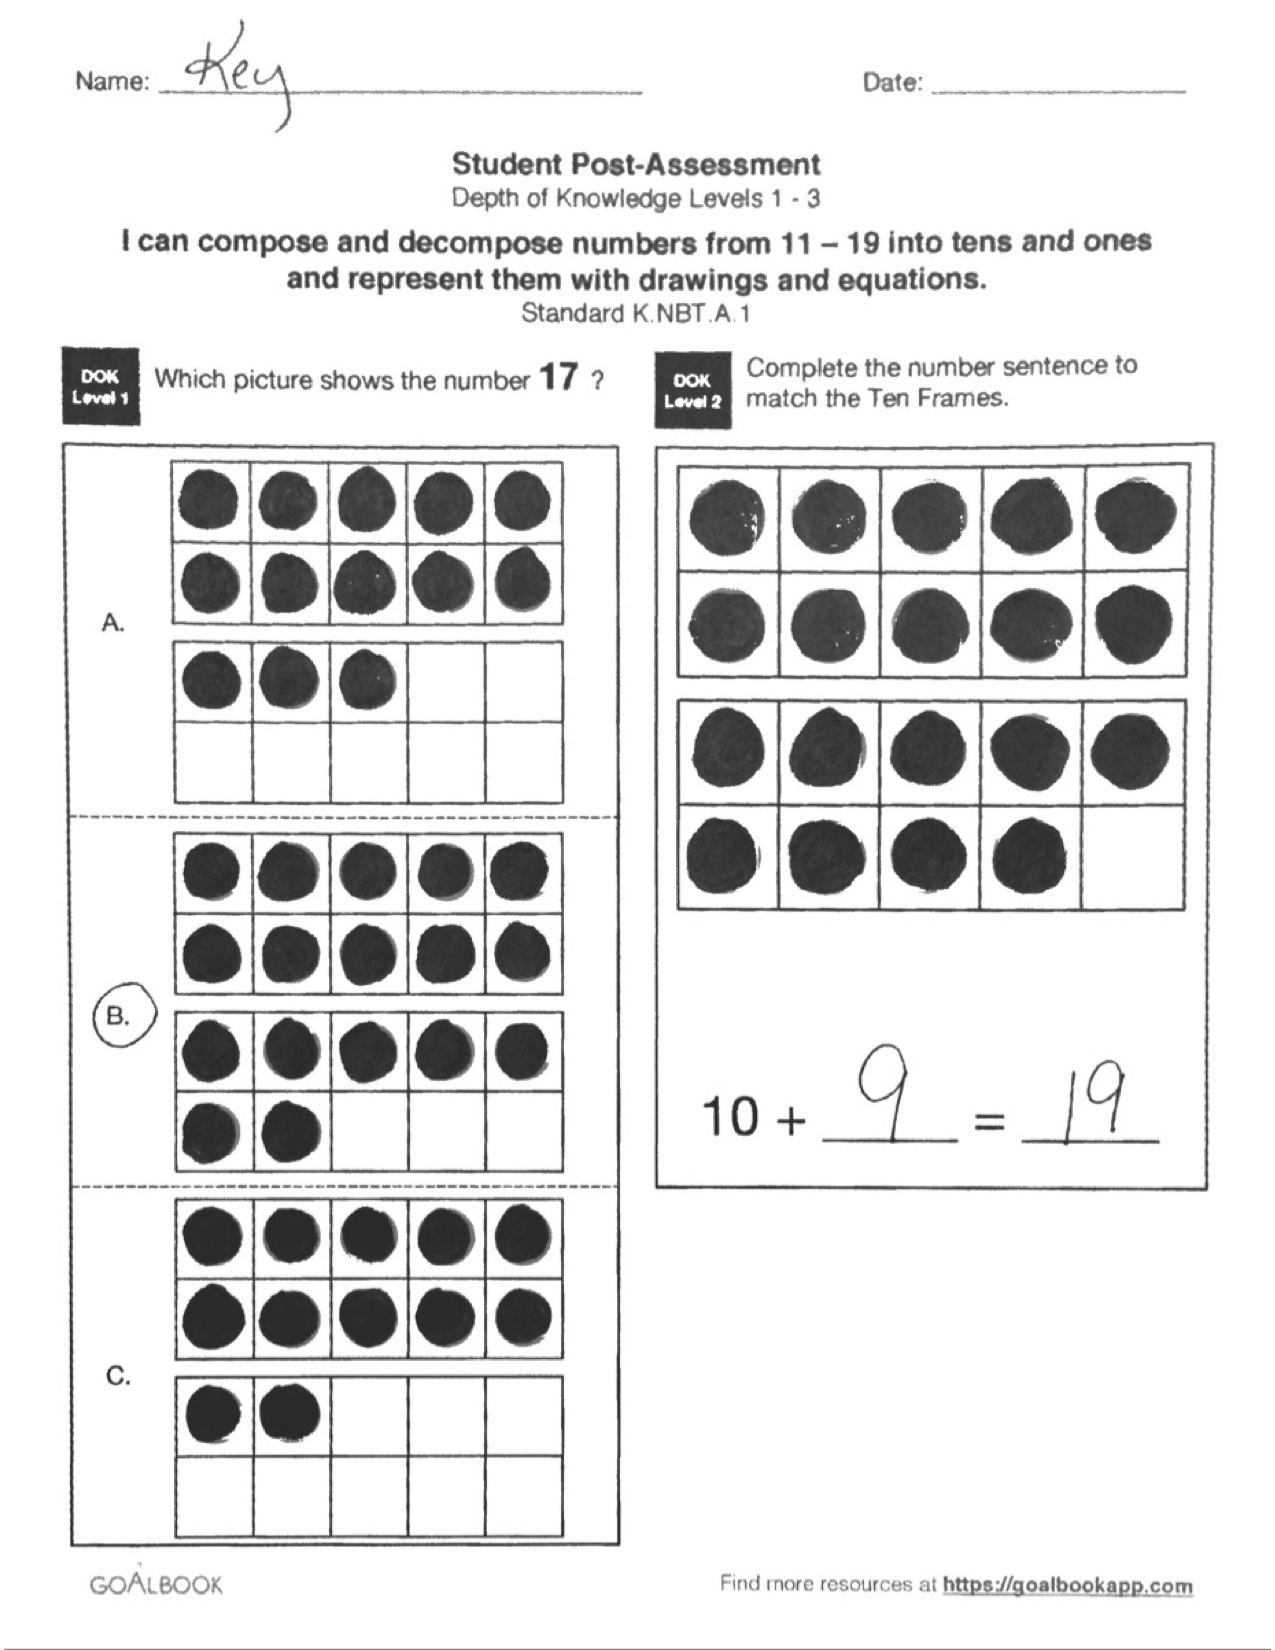 KNBT1 Decompose Numbers 1119 – Composing and Decomposing Numbers Worksheet